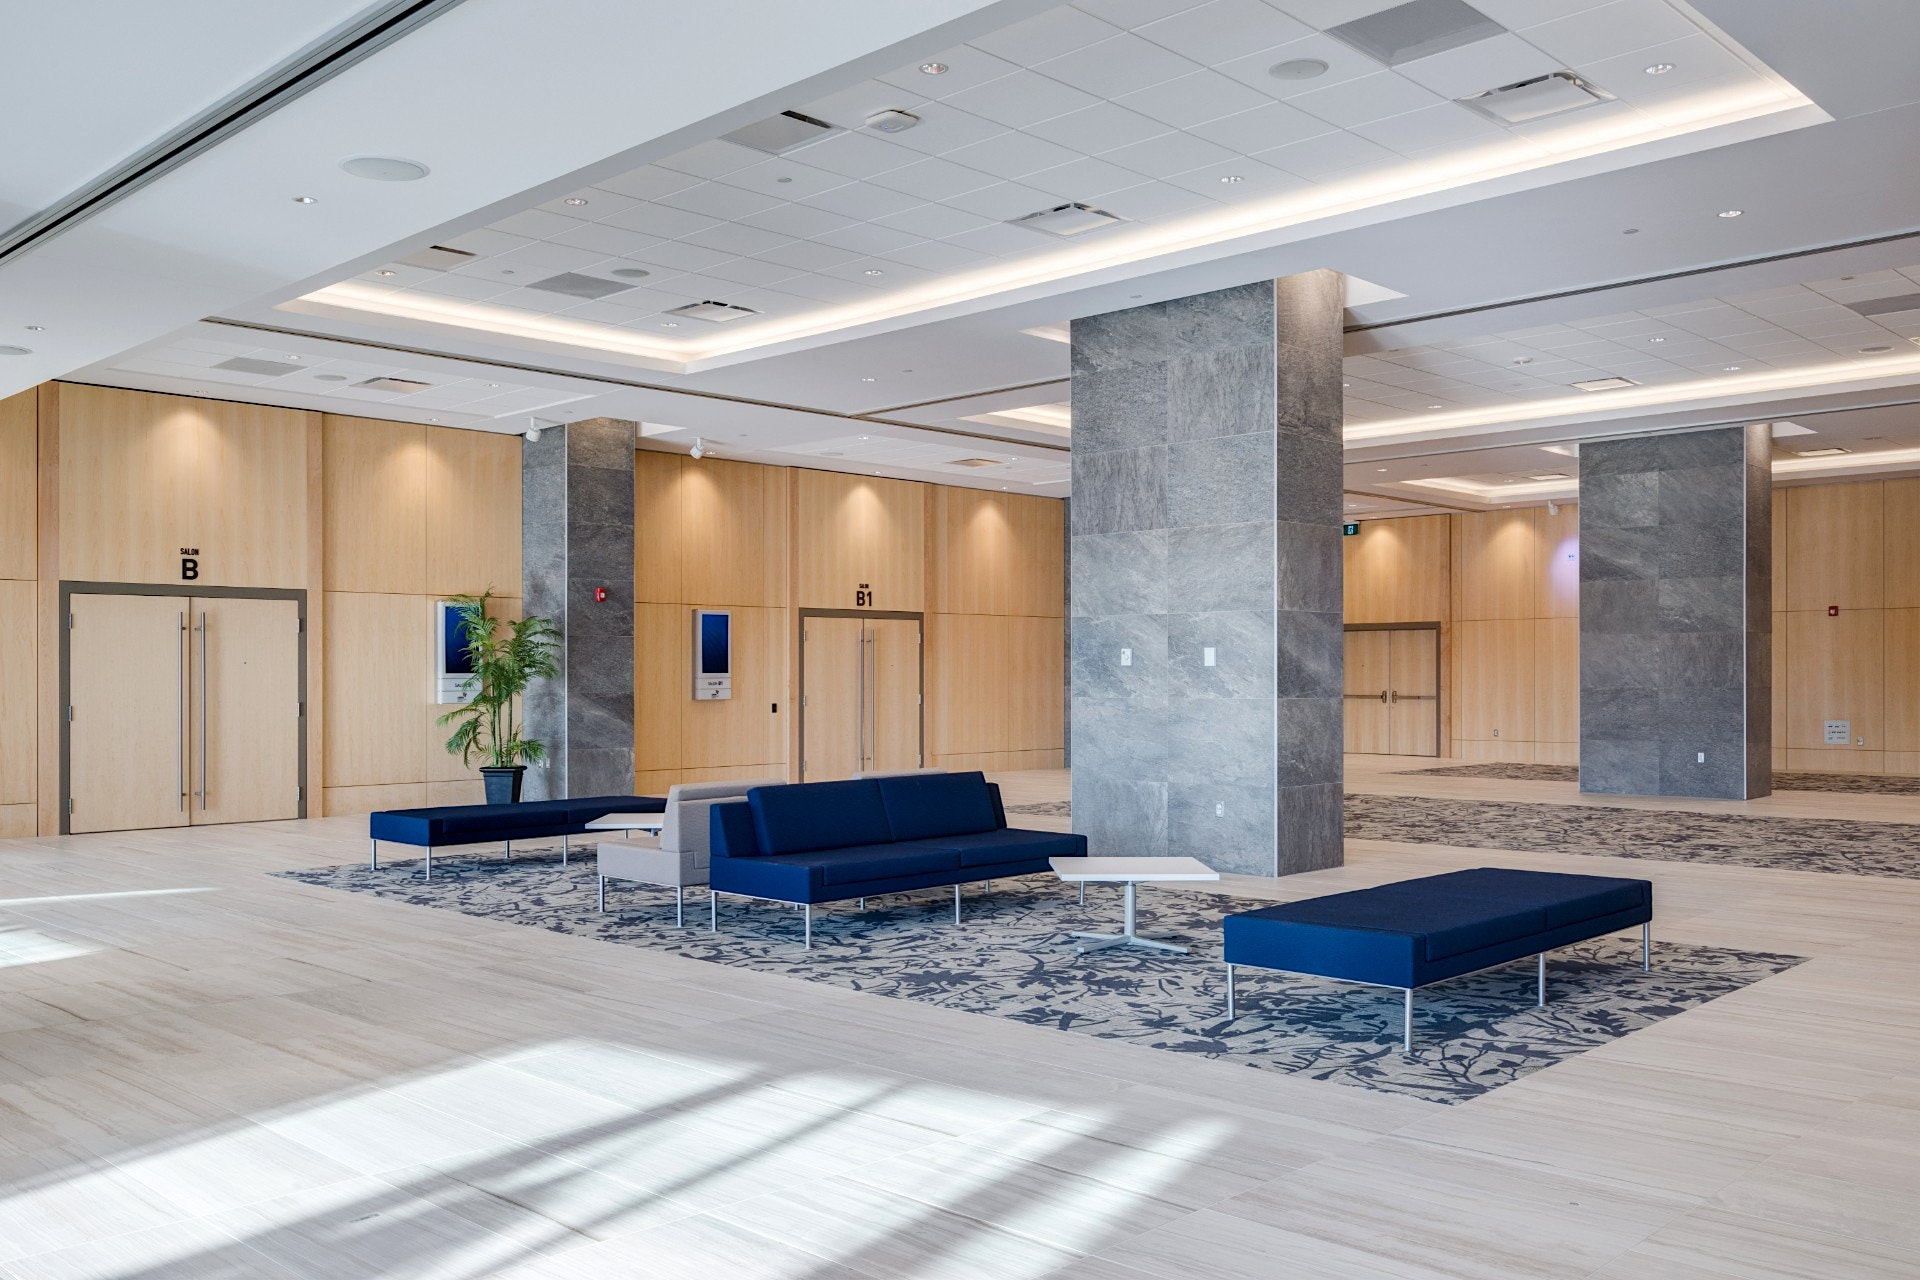 Interior photo of the LCC by Scott Webb Photography